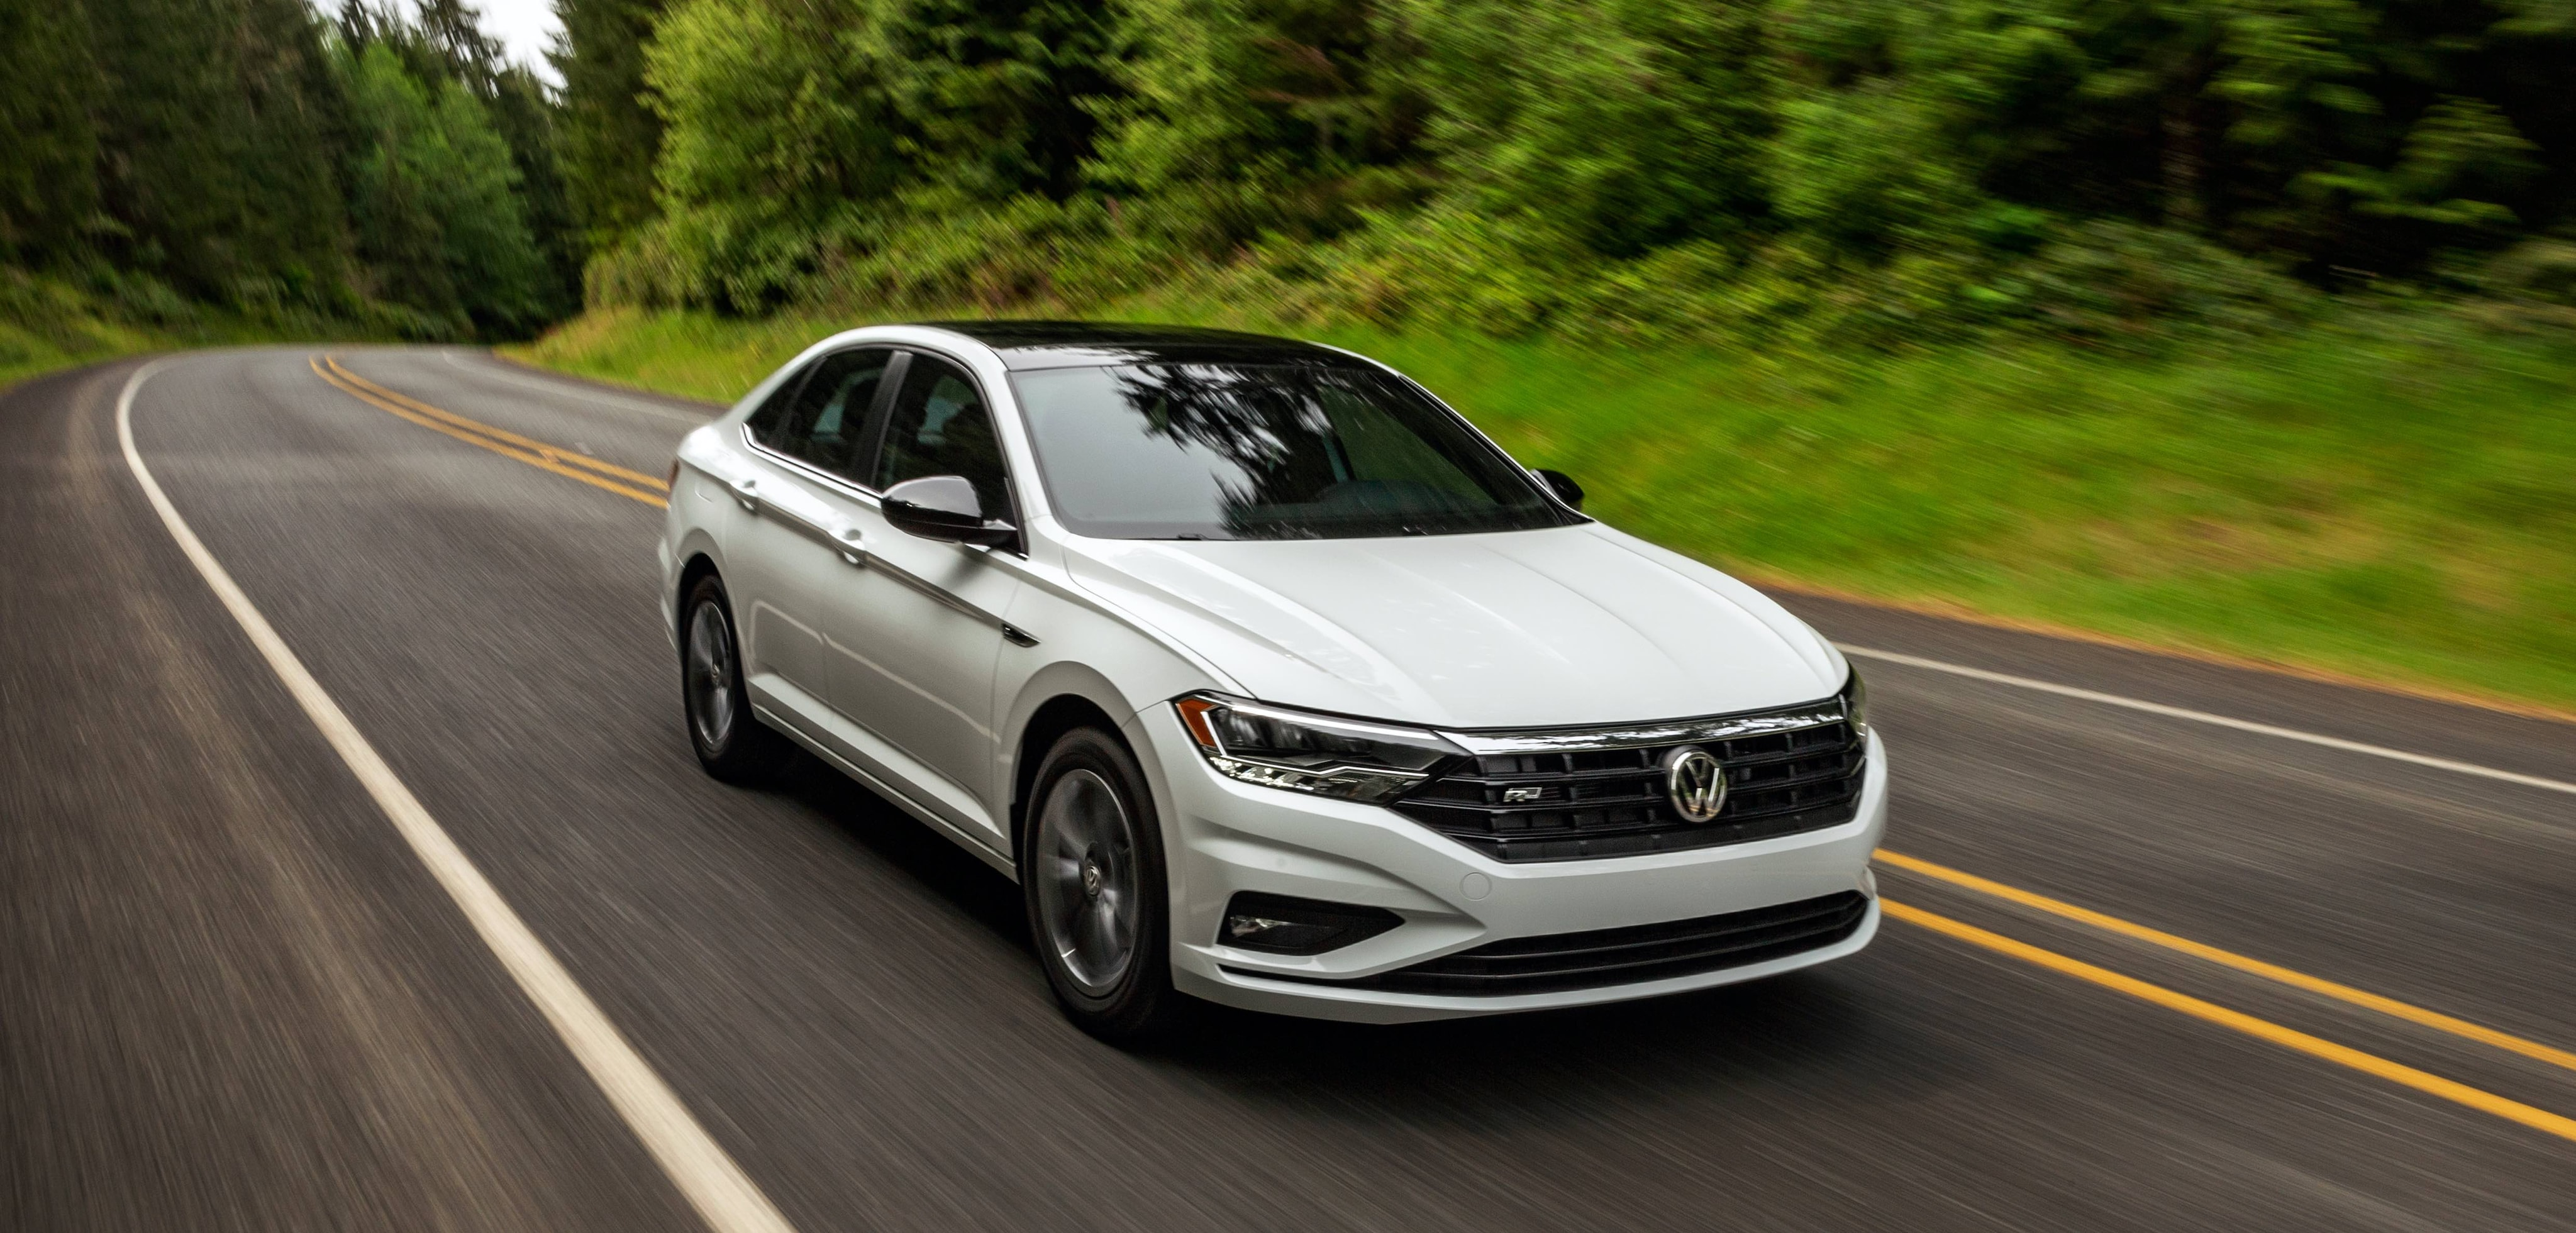 2020 Volkswagen Jetta Sedan White